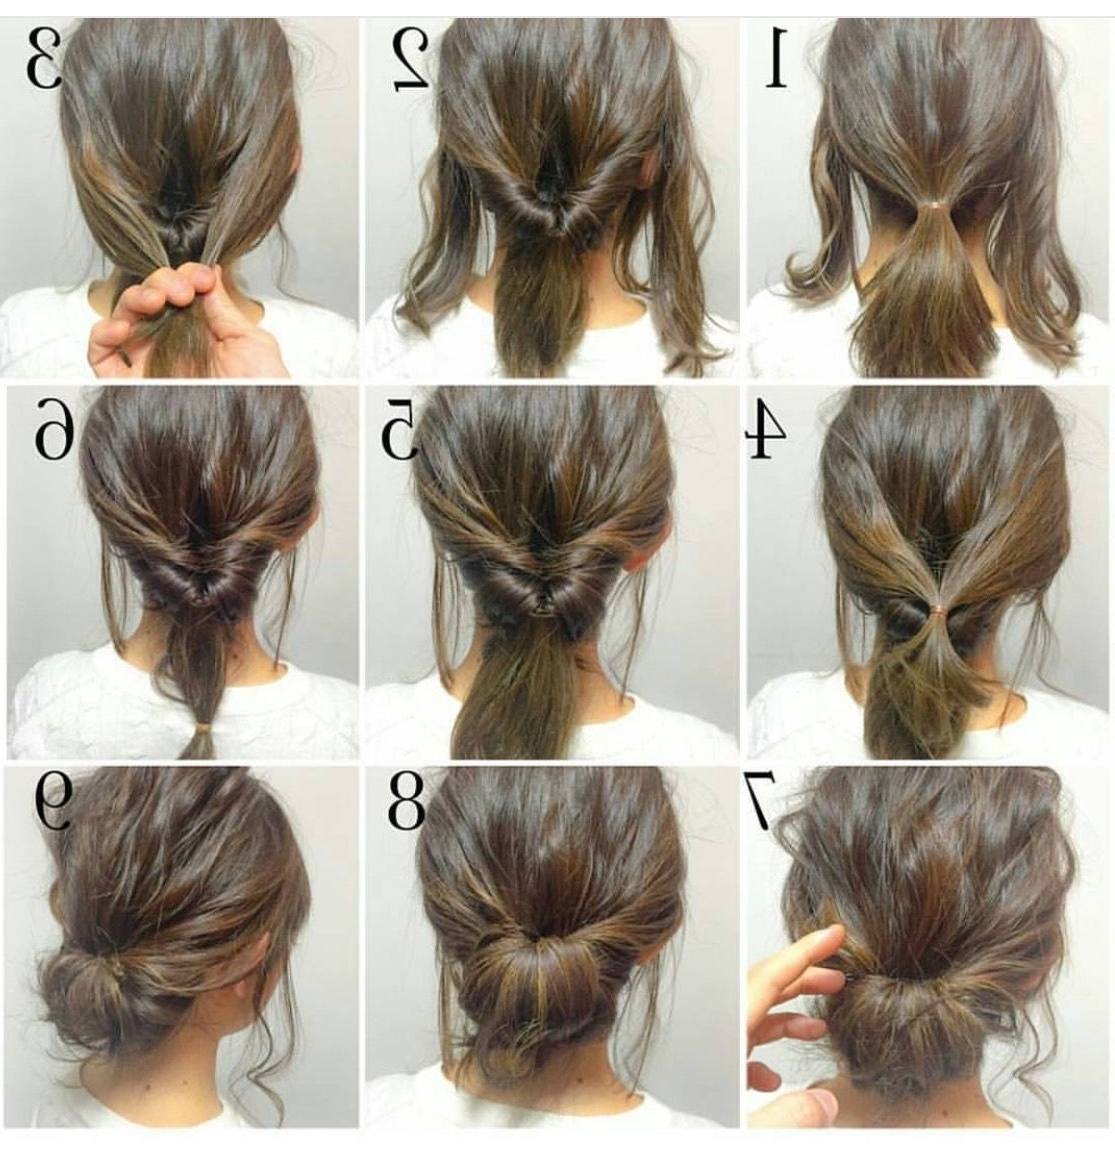 4 Messy Updos For Long Hair | Hairz | Pinterest | Updos, Hair Style With Messy Hair Updo Hairstyles For Long Hair (View 8 of 15)